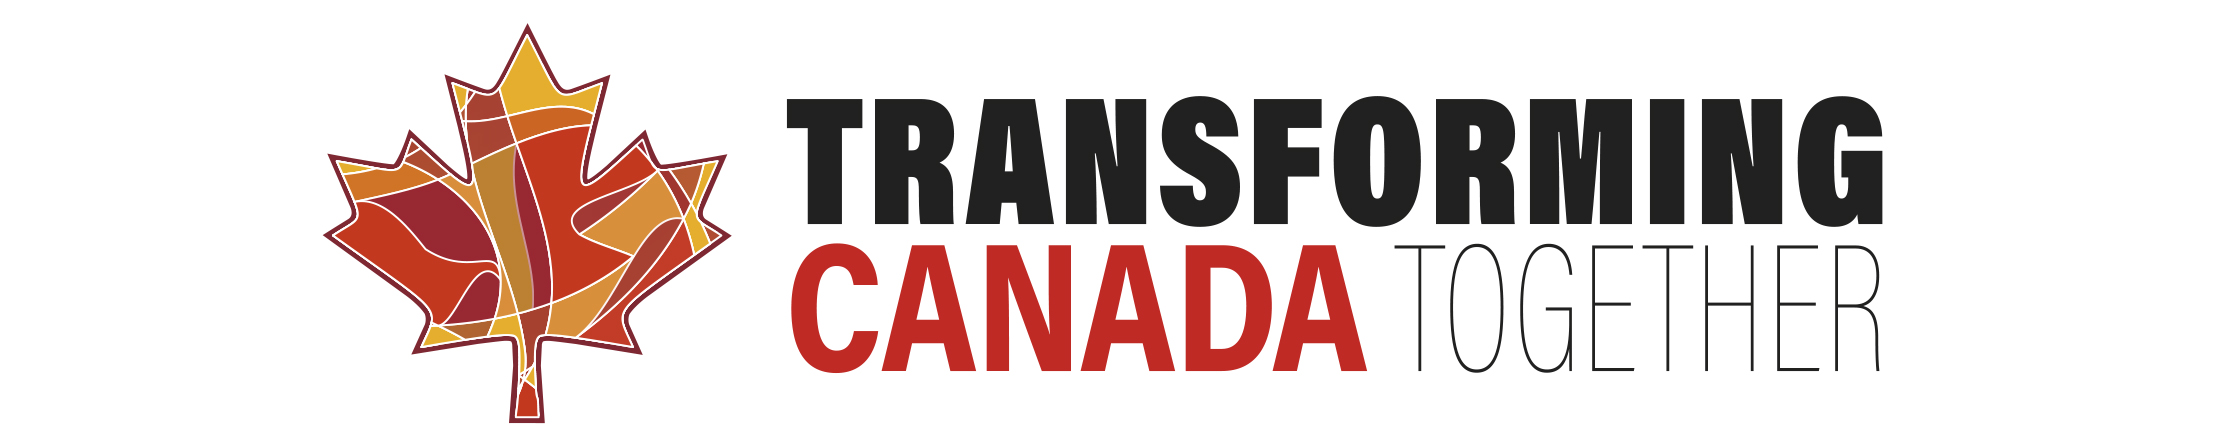 Transforming Canada Together Banner